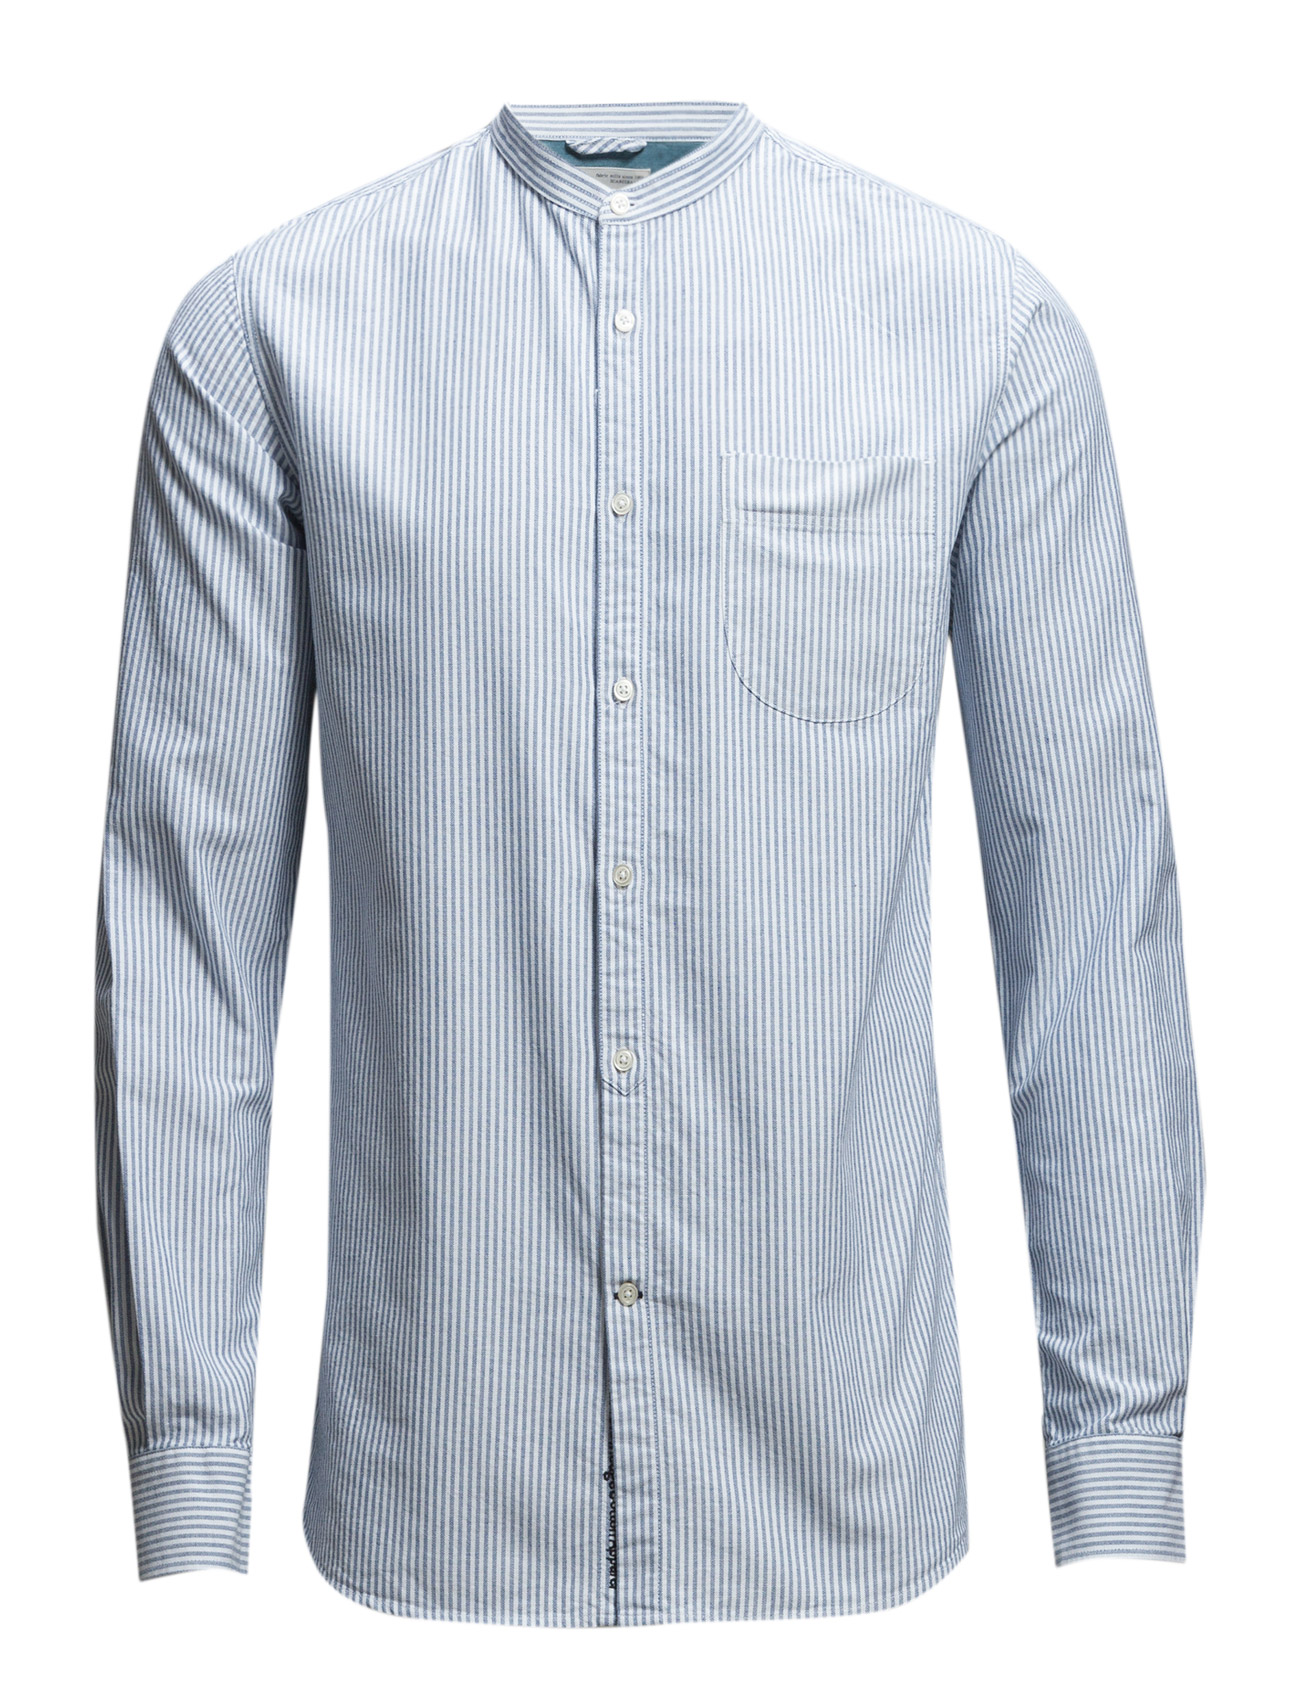 Stand Collar Striped Shirt - Gots Knowledge Cotton Apparel Casual Skor